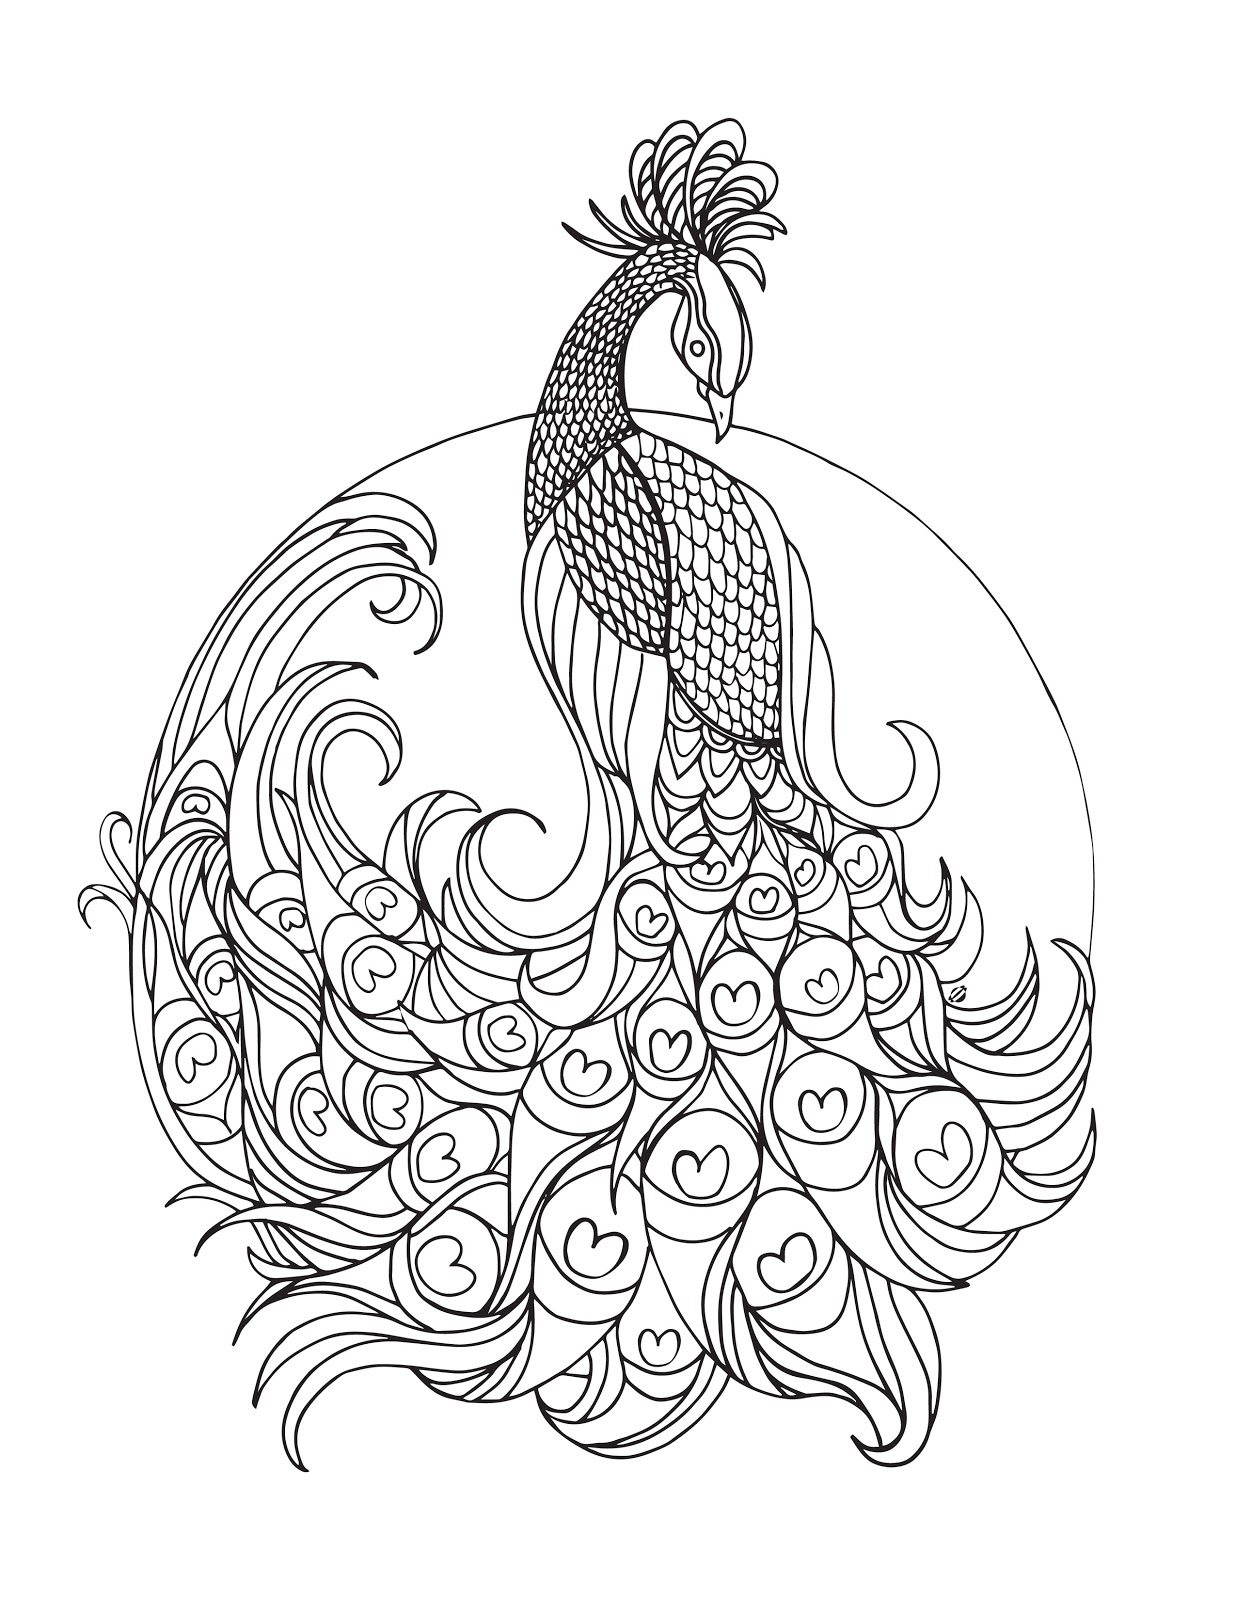 LostBumblebee ©2015 MDBN :: Grown Up Colouring / coloring Peacock :: Free - DONATE TO DOWNLOAD - PRINTABLE : : PERSONAL USE ONLY.